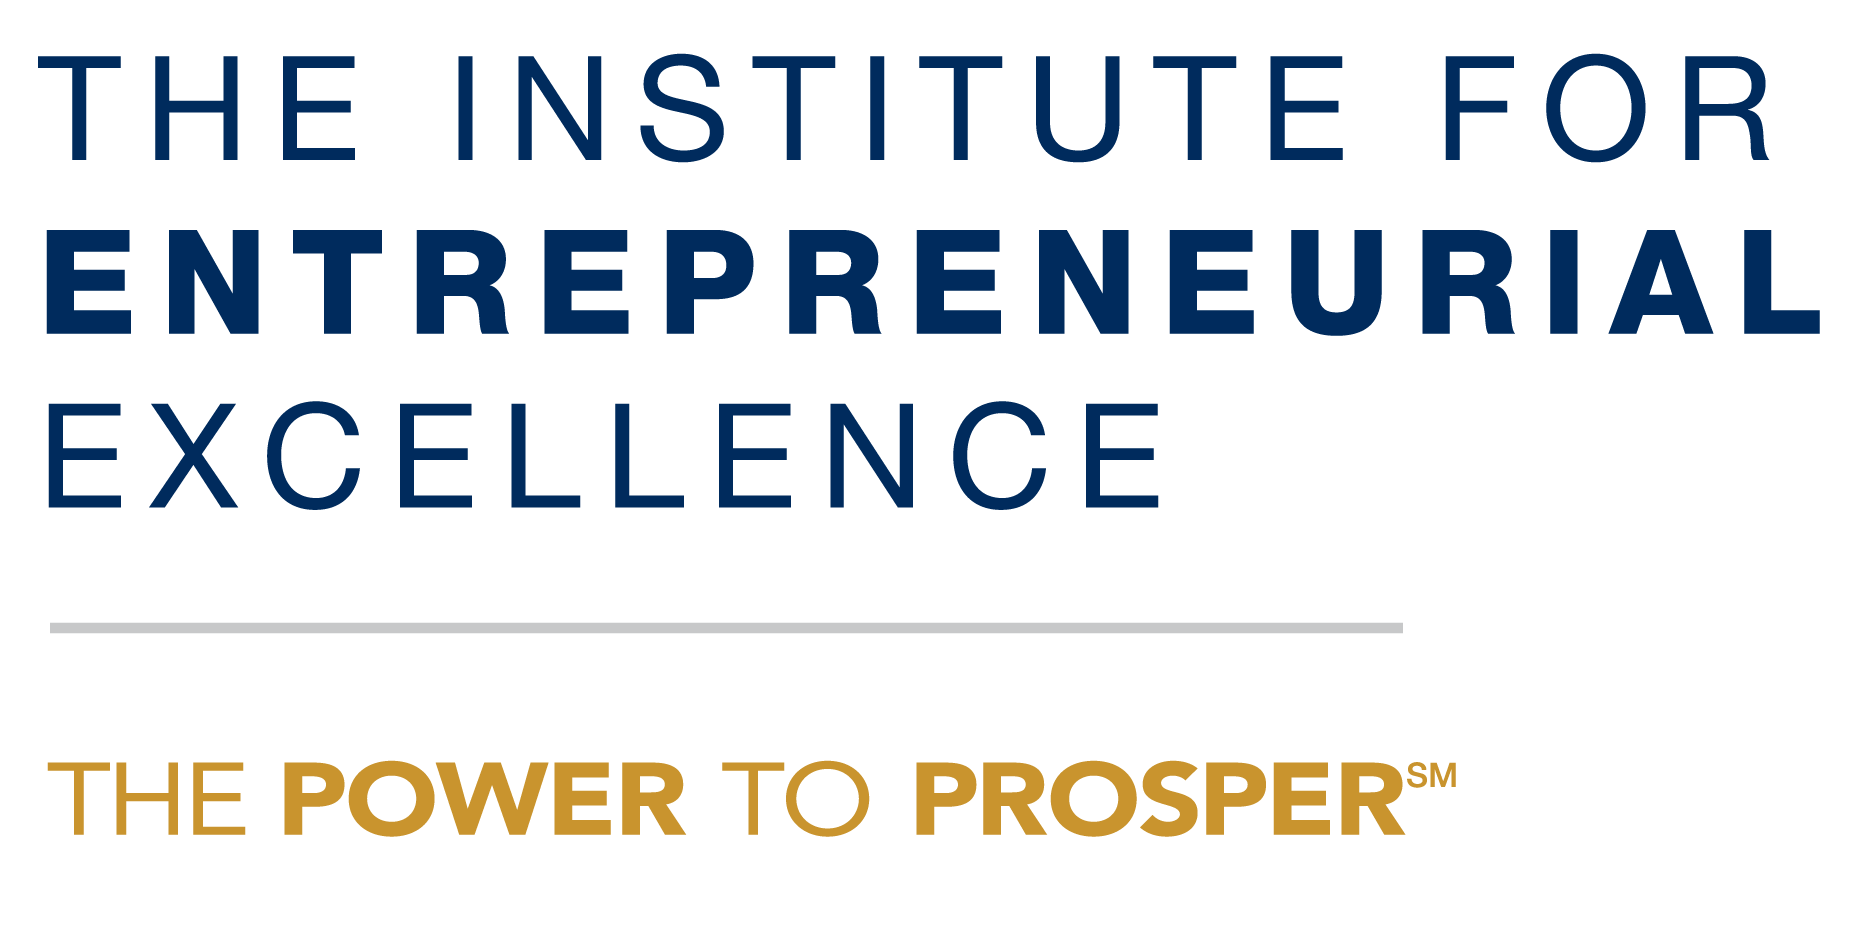 University of Pittsburgh Institute for Entrepreneurial Excellence